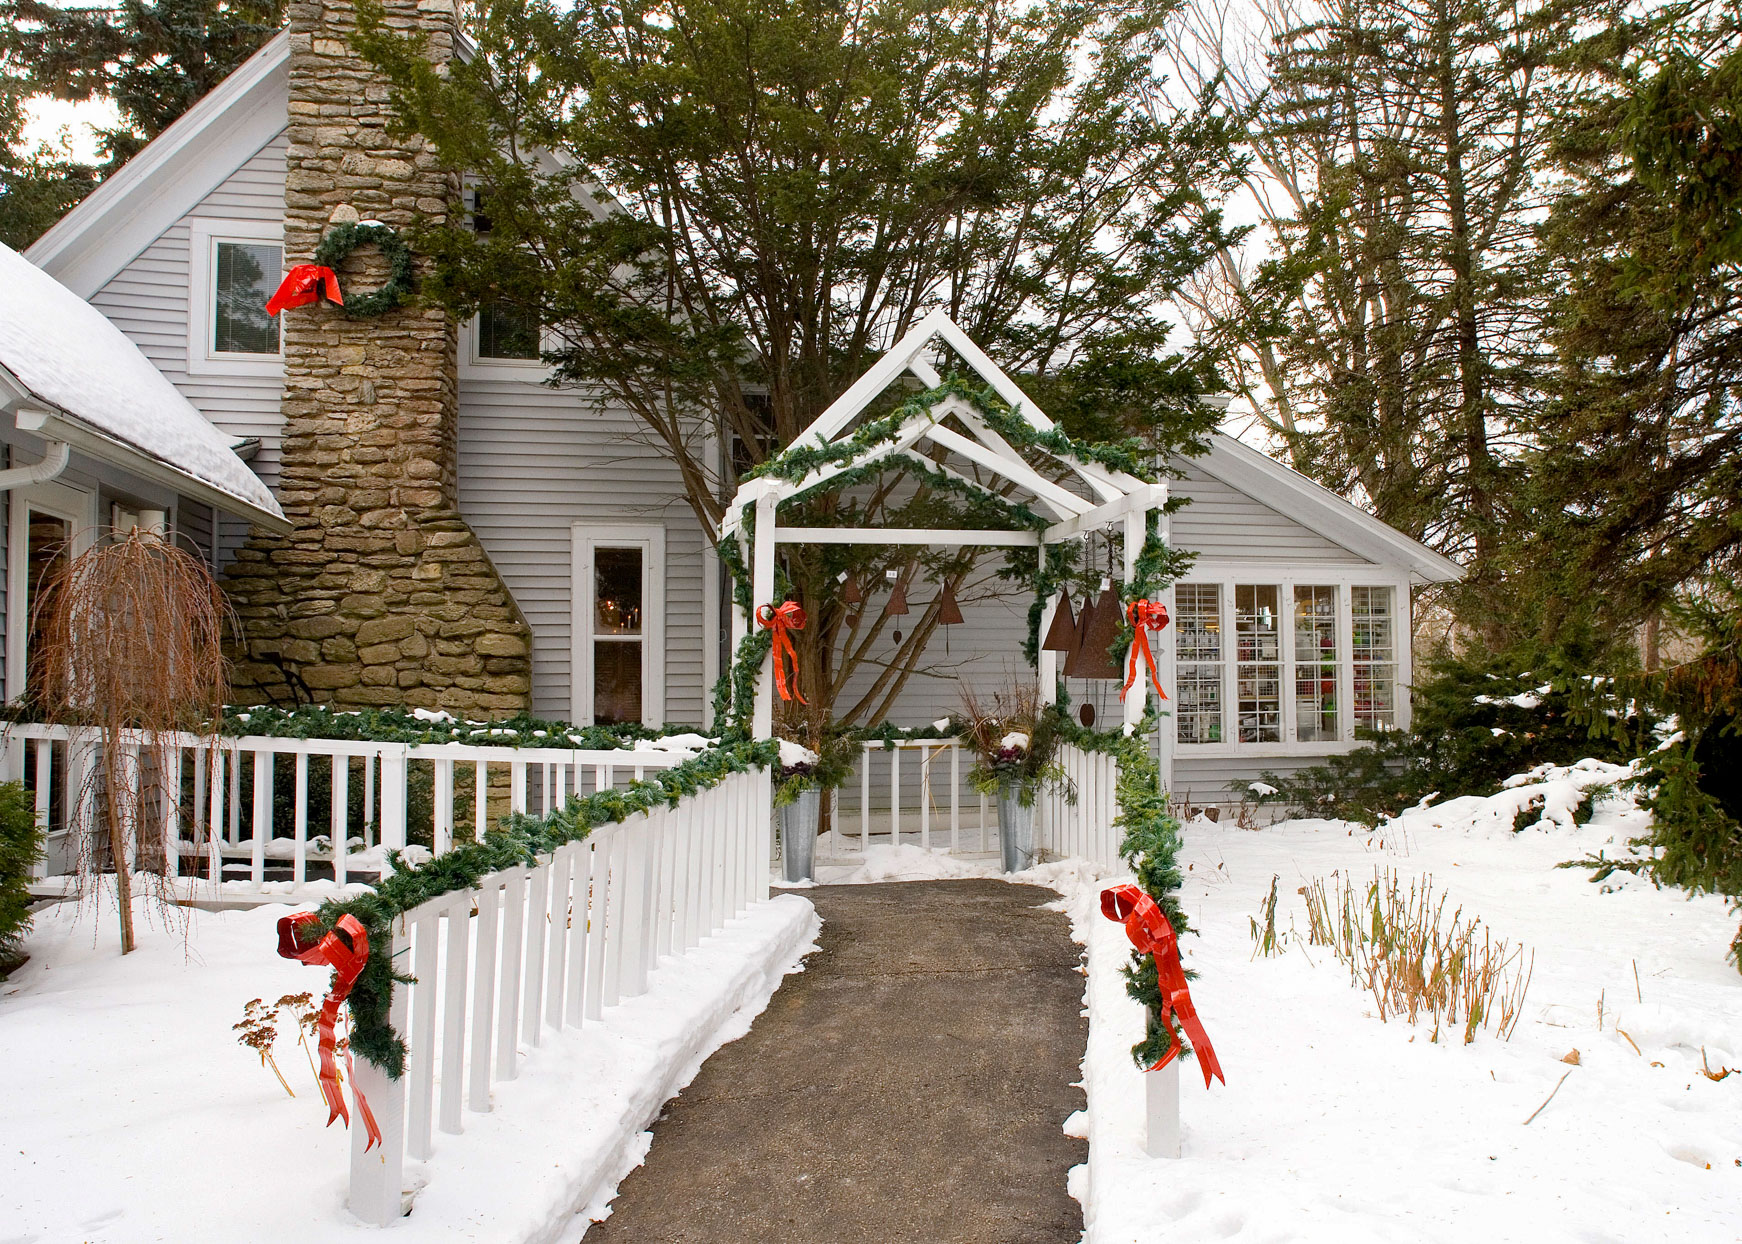 home walkway decorated with garland in snow